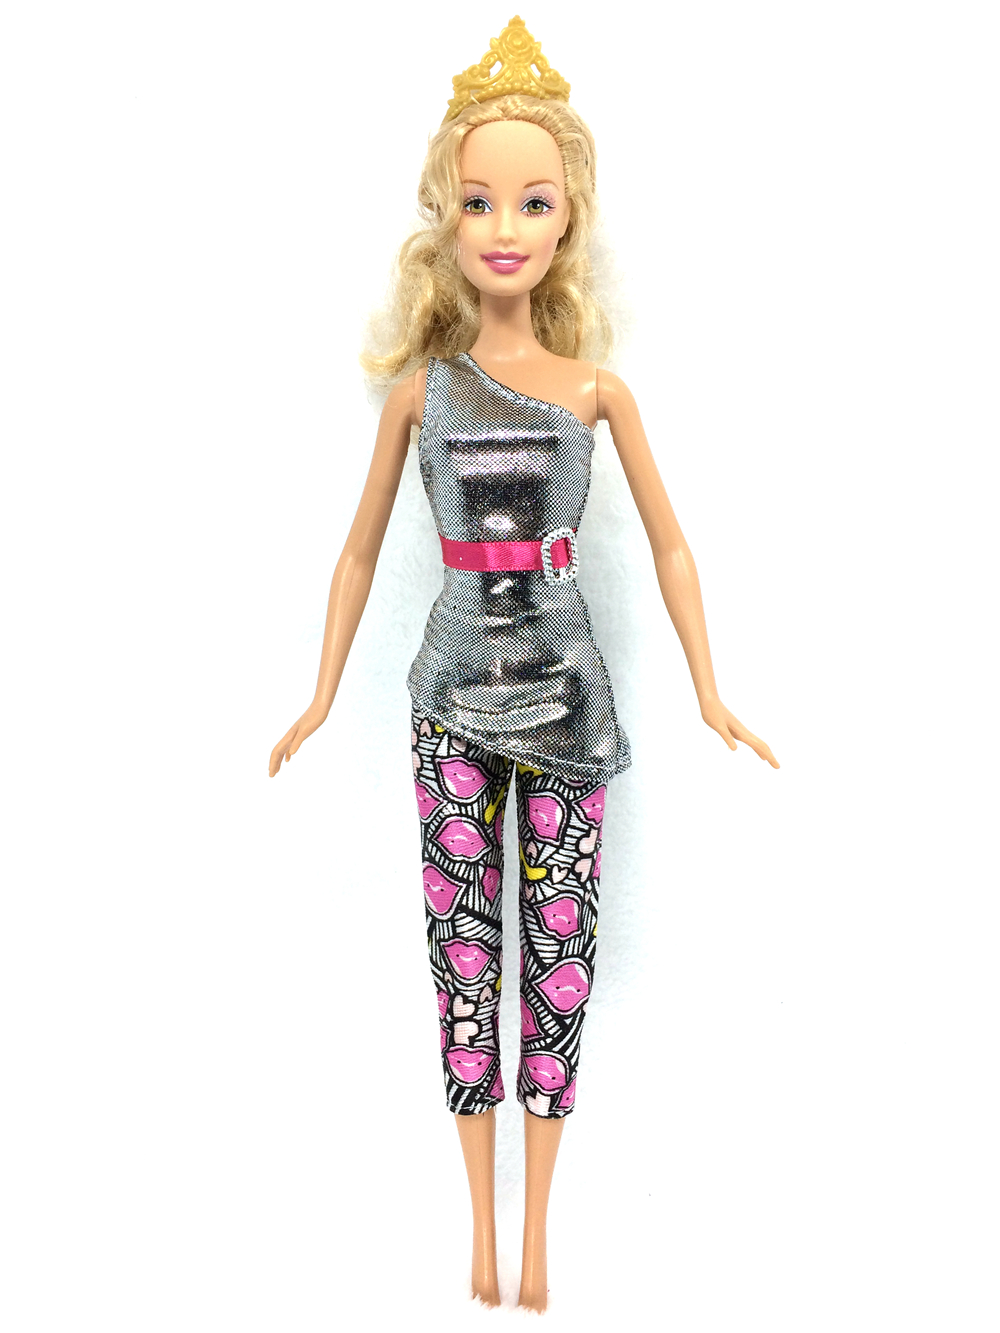 NK 2017 Newest Dolloutift  Beautiful Handmade Party Clothes Top Fashion Dress For Barbie Noble Doll Best Child Girls'Gift 049D